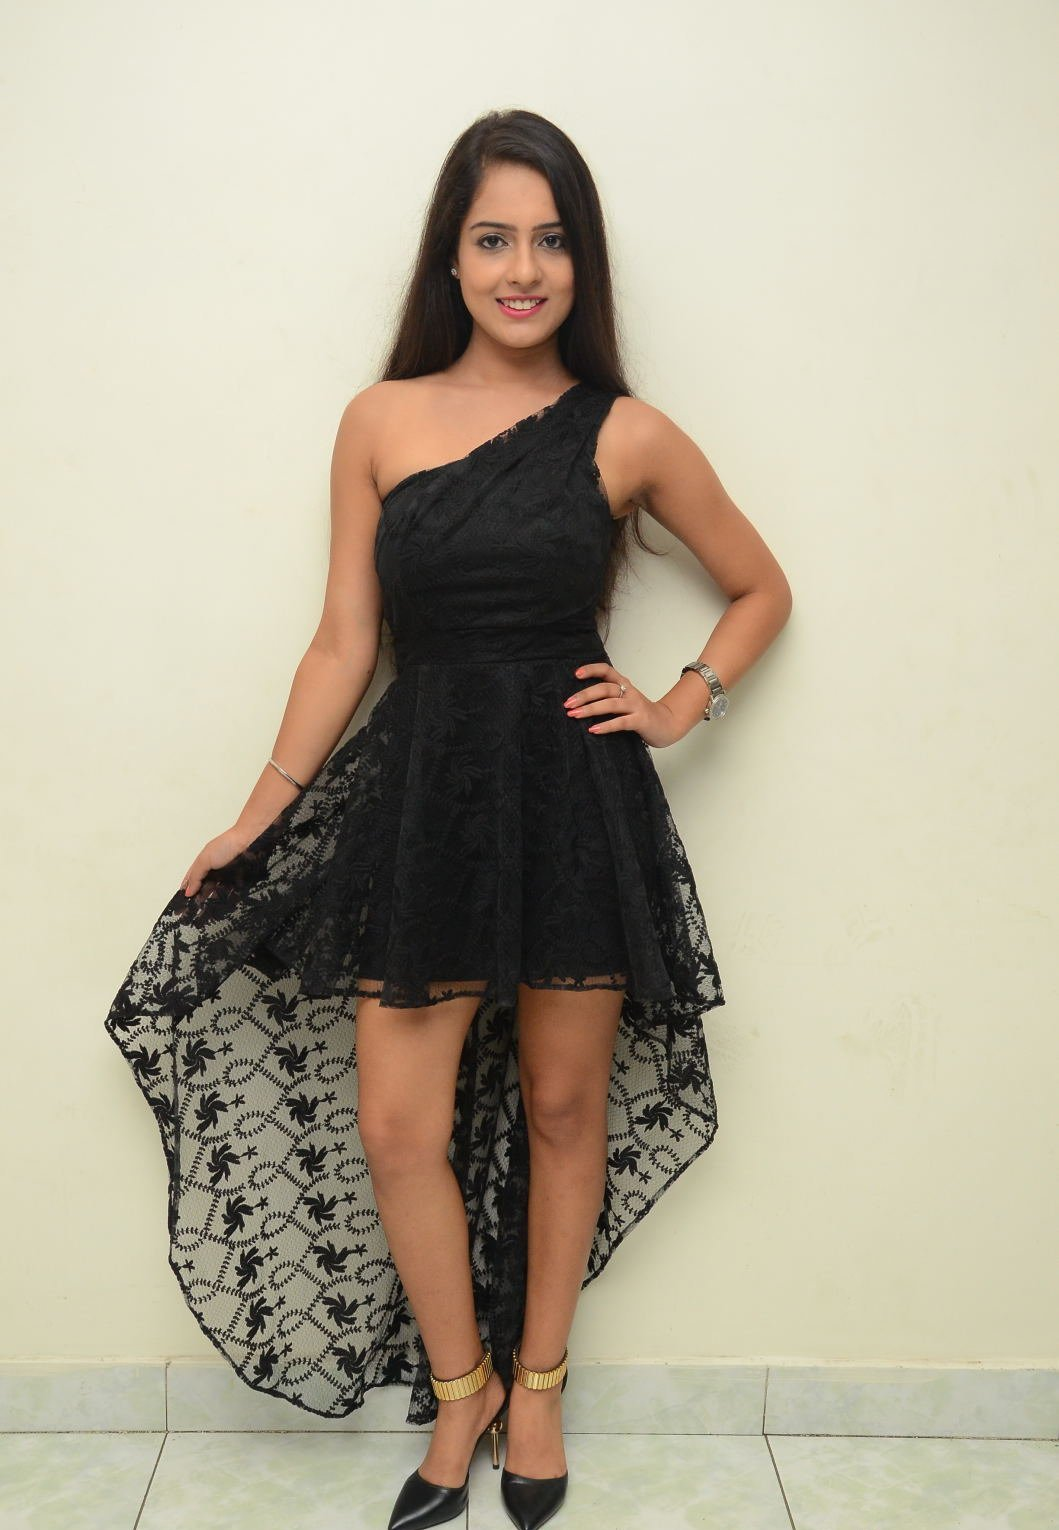 MALVI MALHOTRA BLACK FROCK COSTUME DRESS